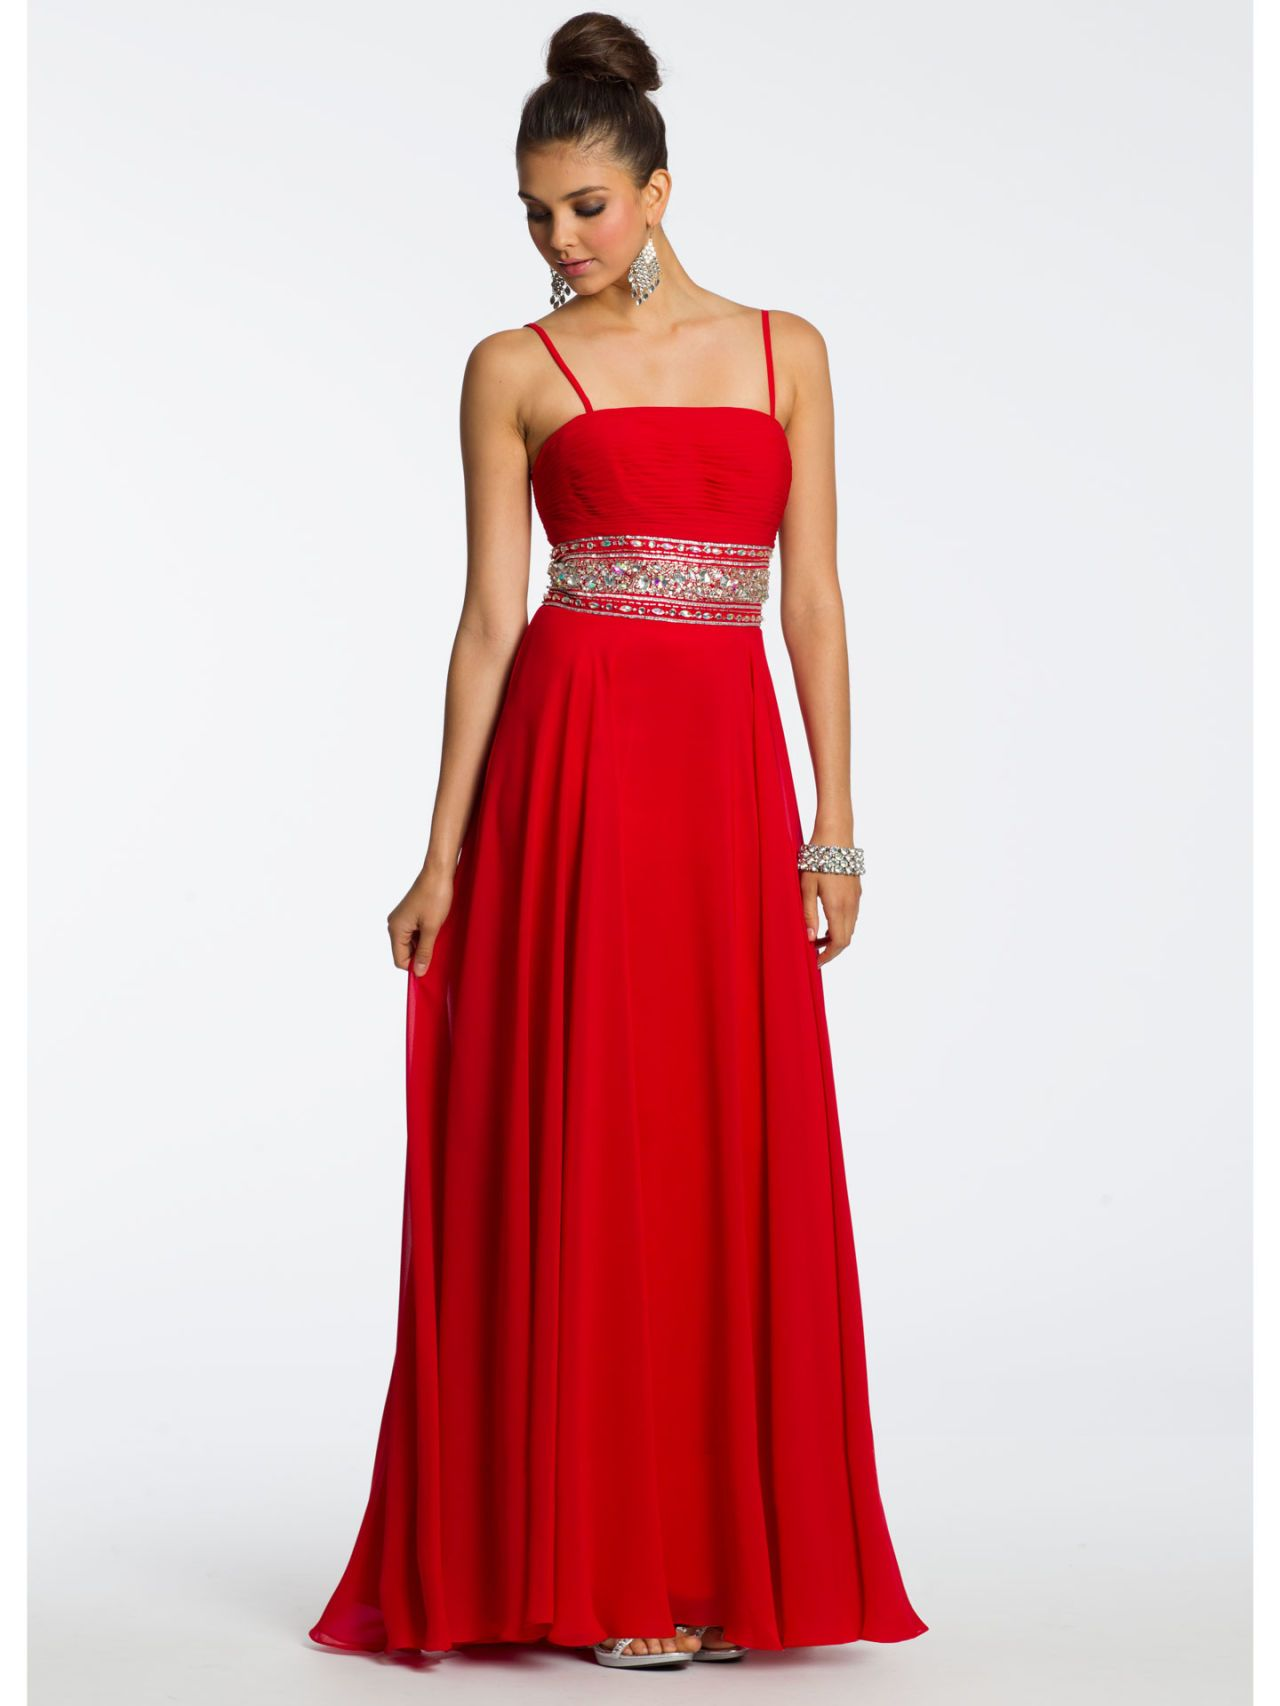 Buy Red dresses quinceanera for damas pictures trends